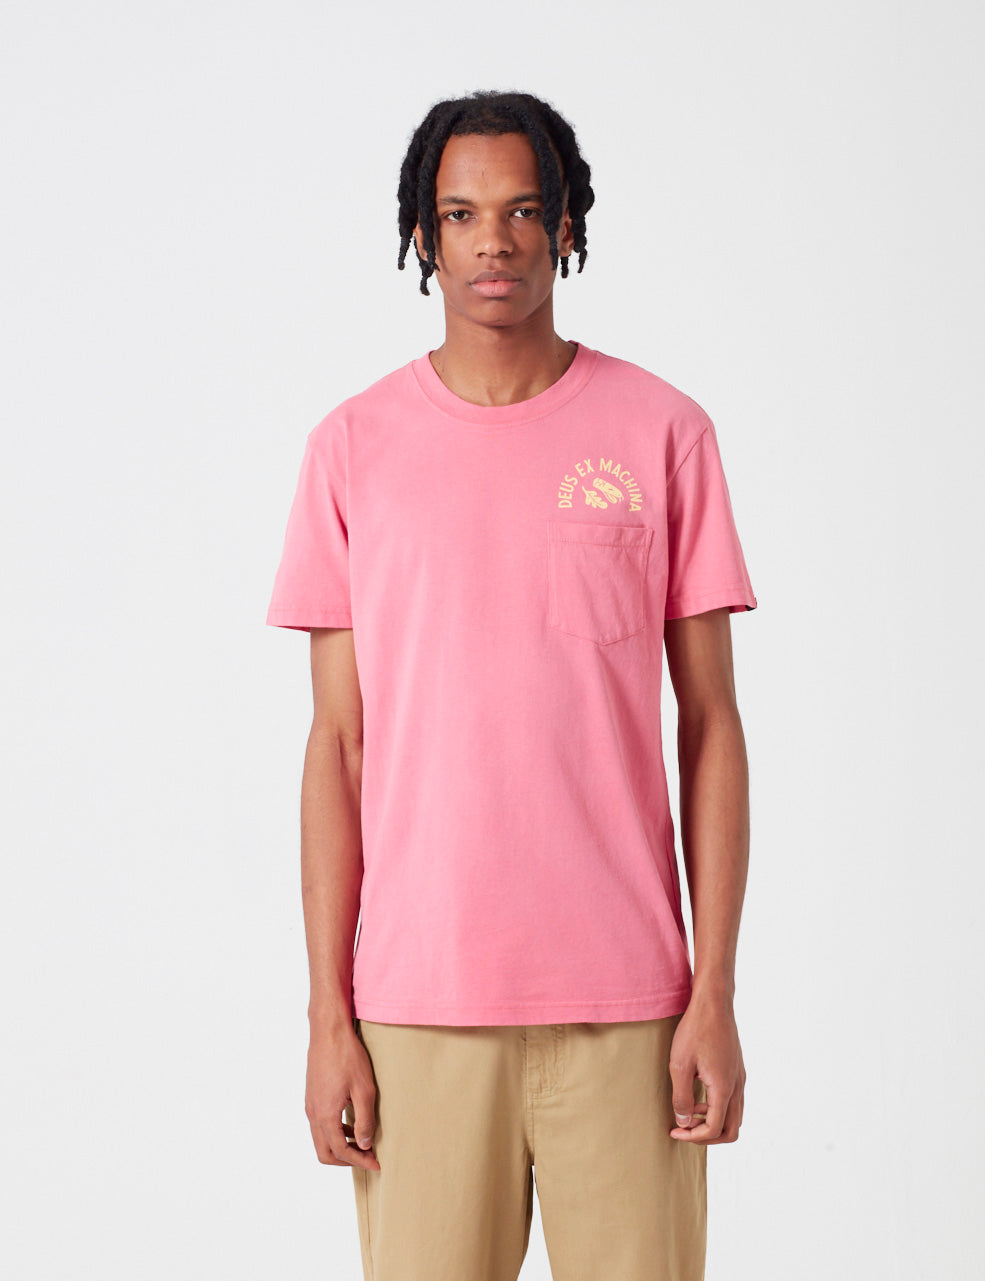 Deus Ex Machina Sunbleached Responsibilities T-shirt - Rose Red / Yellow